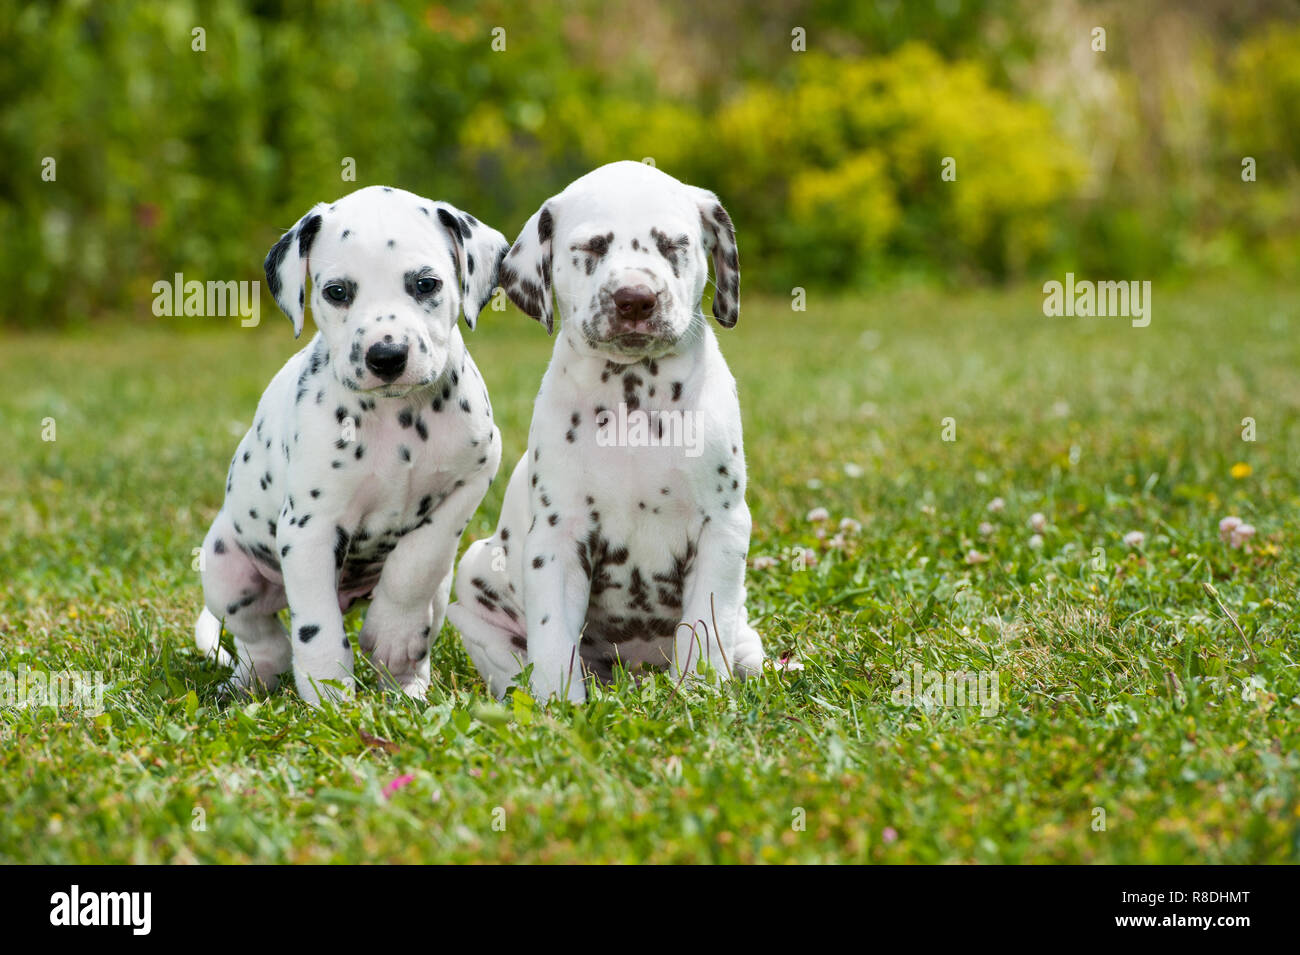 Dalmatian puppies playing on a meadow - Stock Image